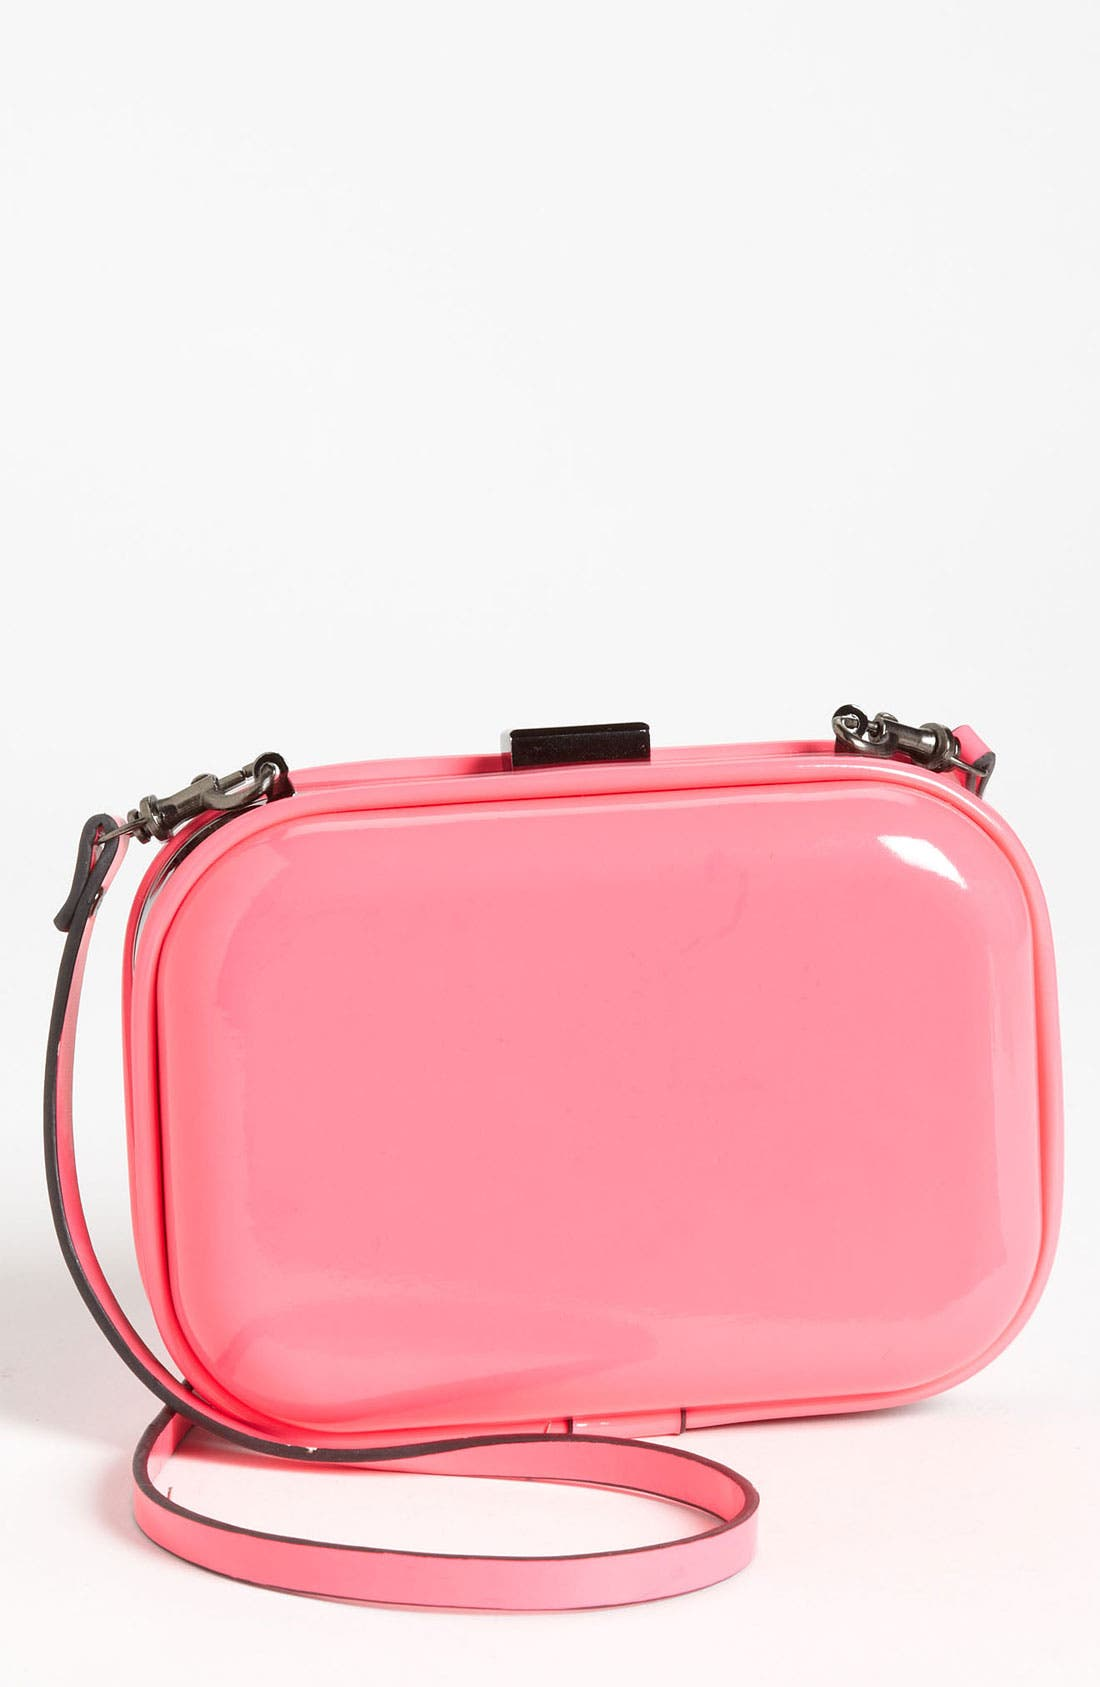 Natasha Couture Patent Box Clutch,                         Main,                         color, Hot Pink